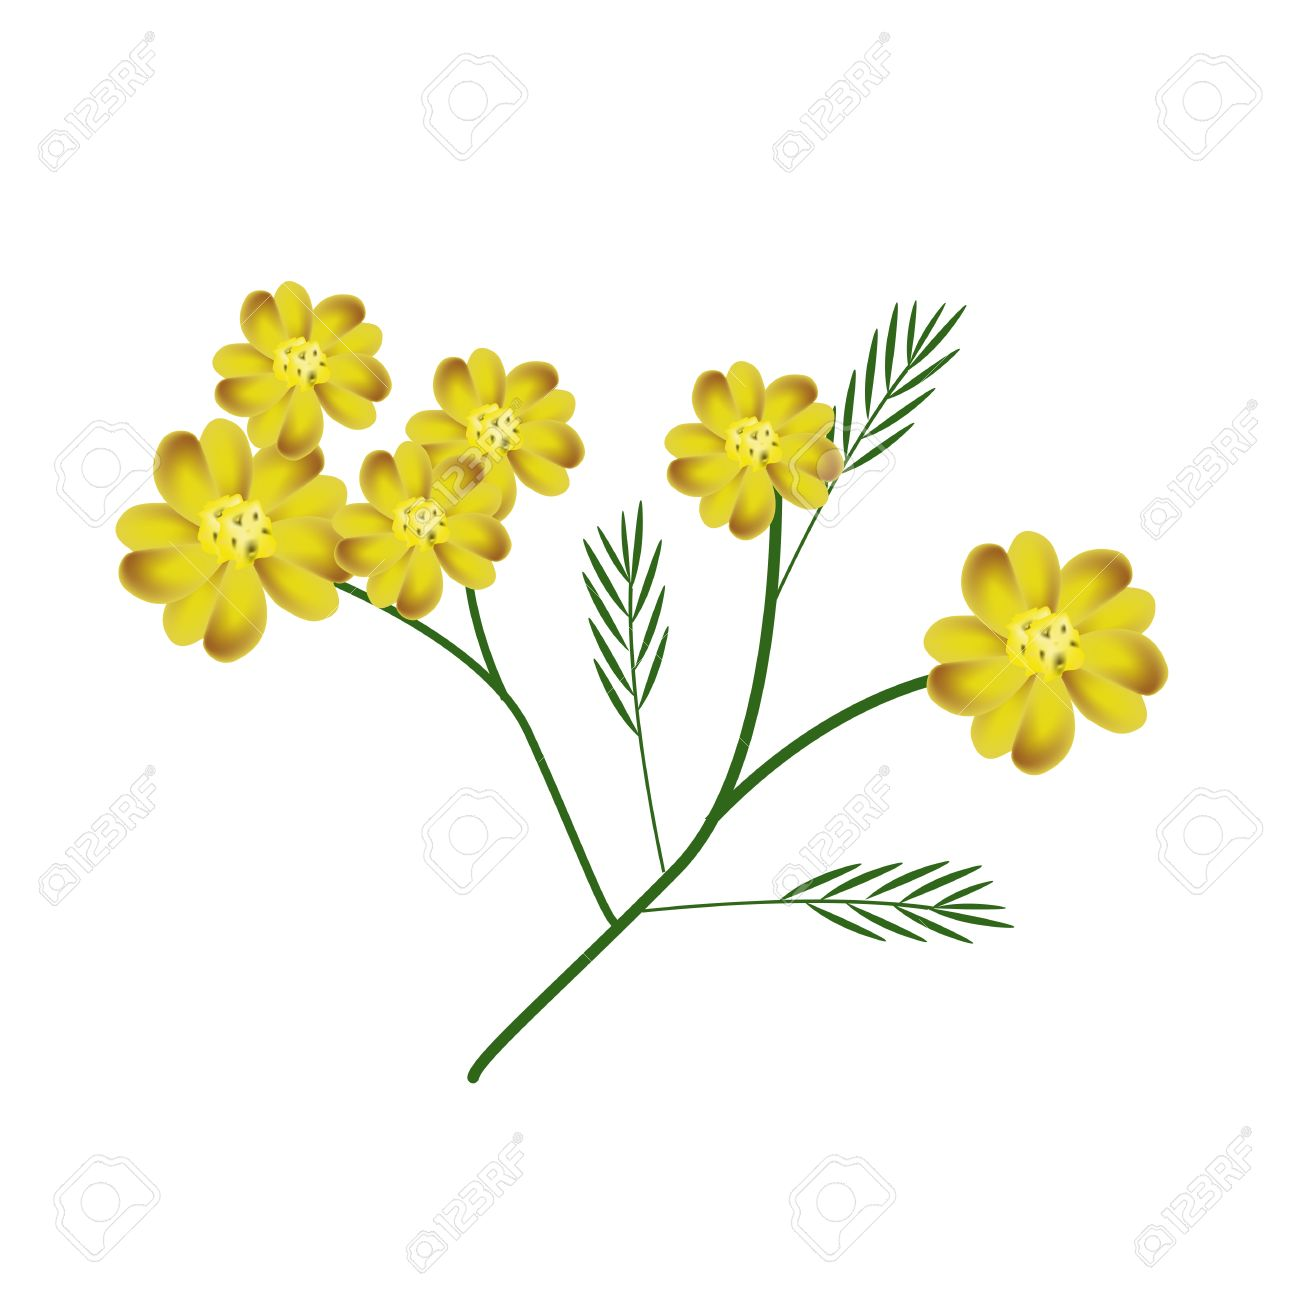 Beautiful Flower, Illustration Of Yellow Yarrow Flowers Or.